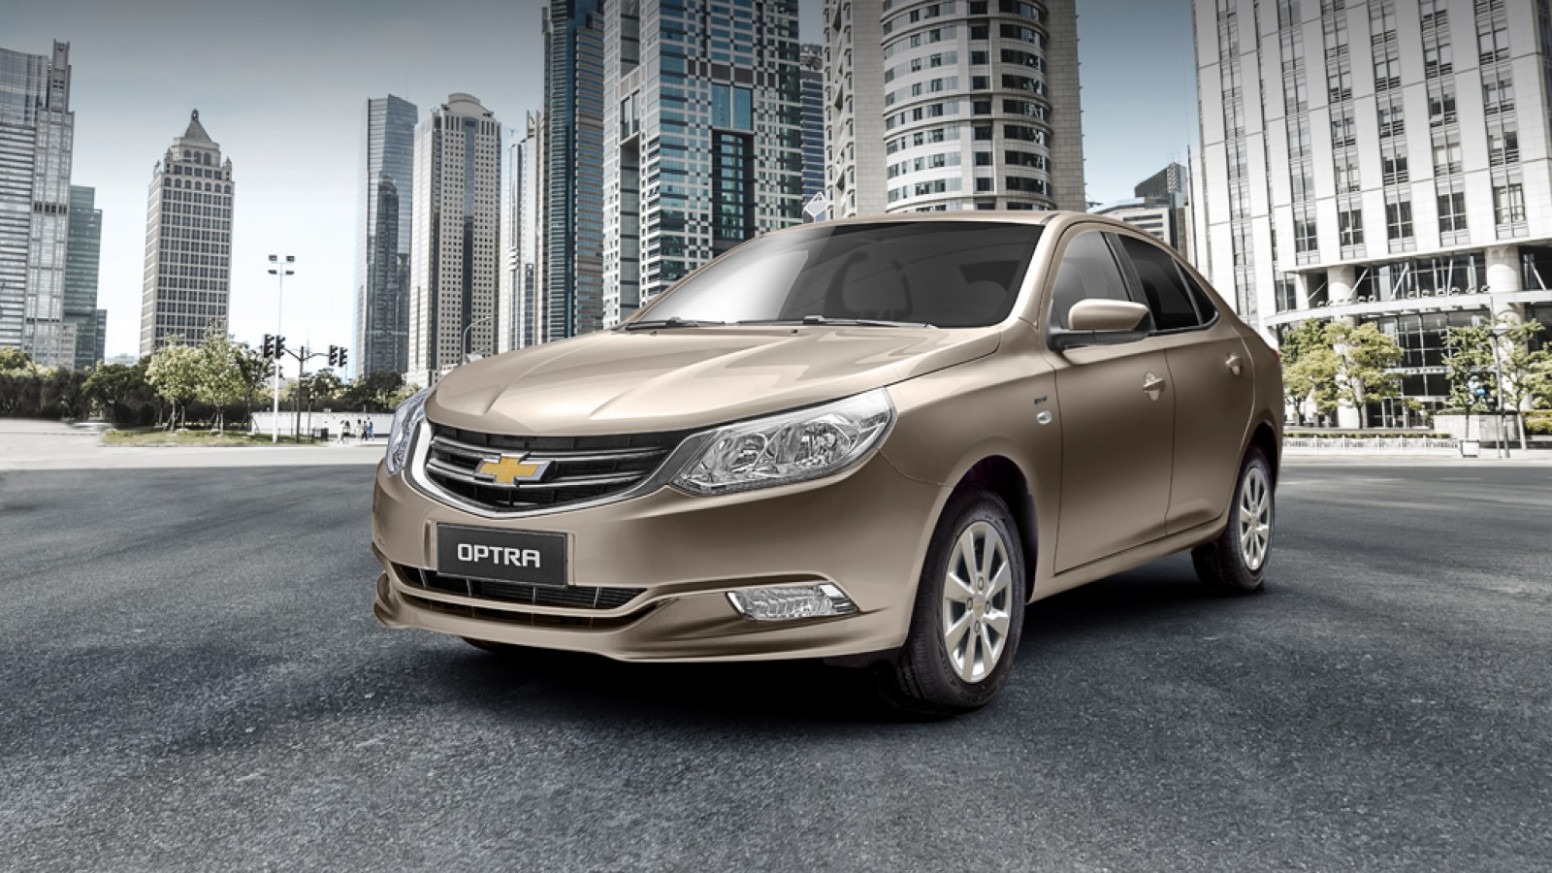 Chevrolet Optra Price in Egypt - New Chevrolet Optra Photos and ...